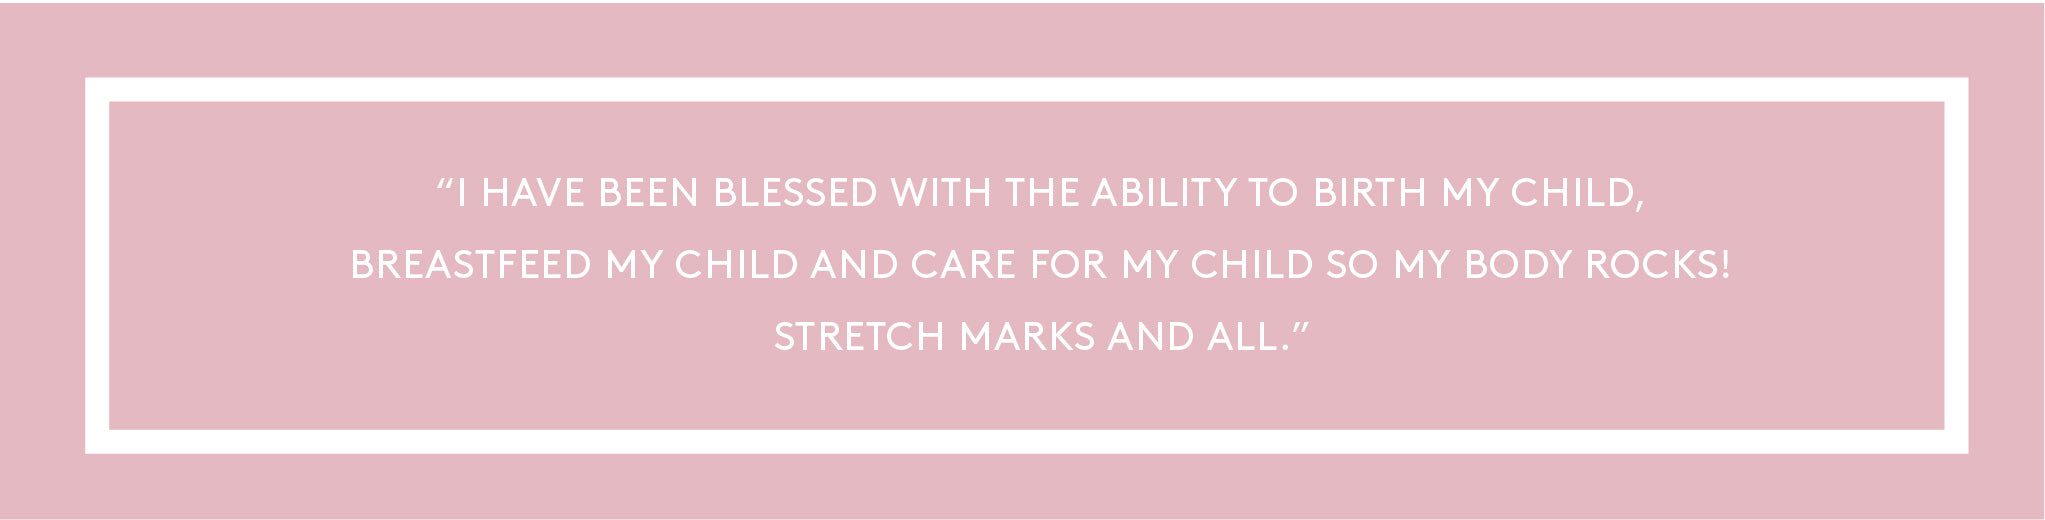 ''I have been blessed with the ability to birth my child, breastfeed my child and care for my child so my body rocks! Stretch marks and all.''